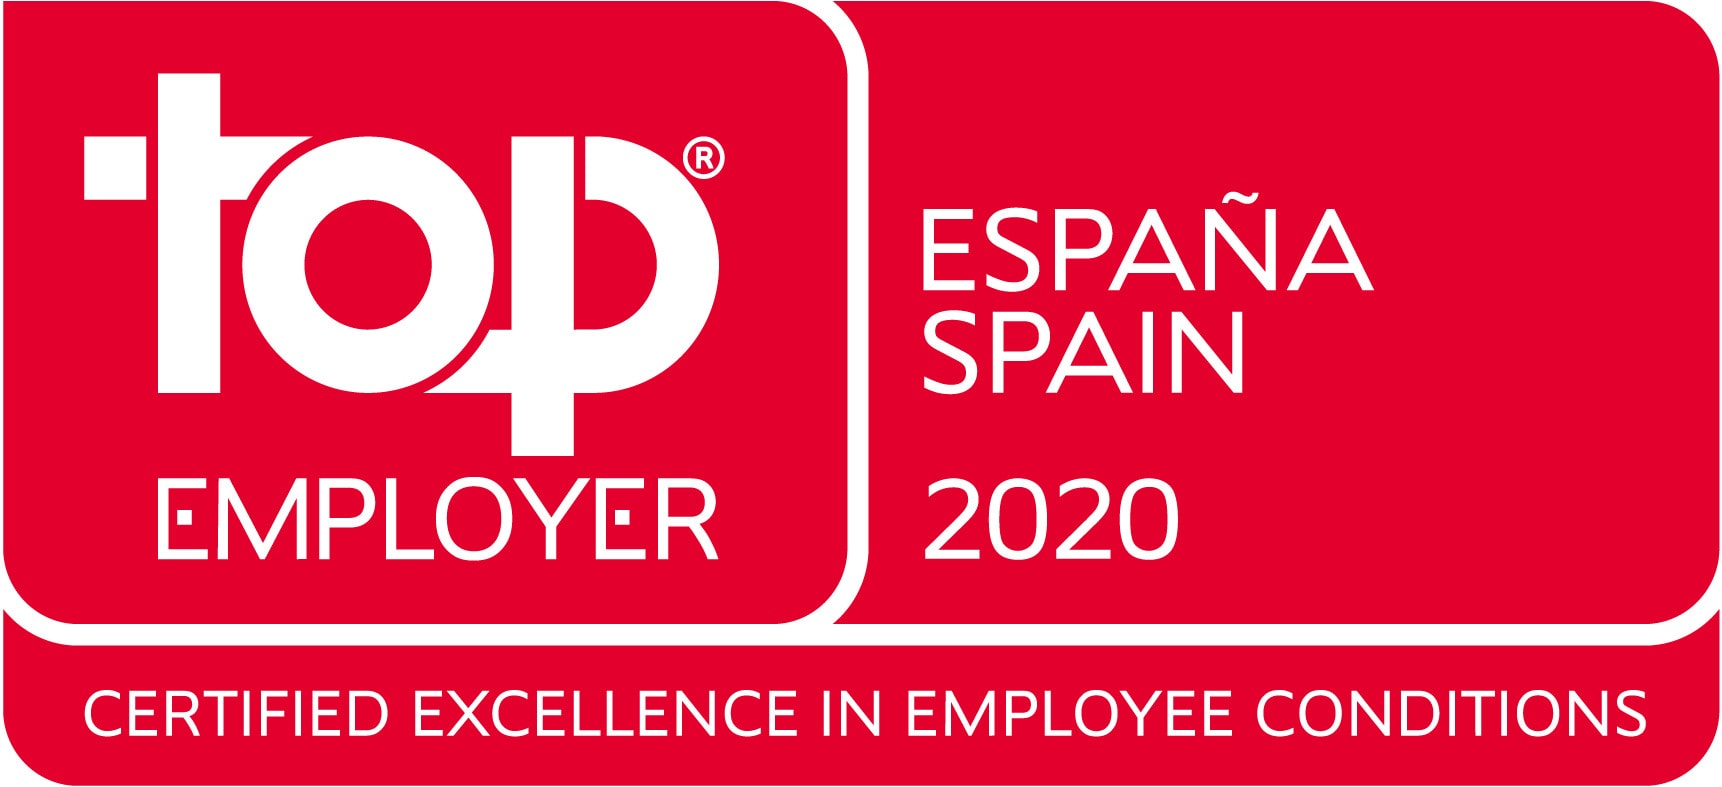 TOP EMPLOYERS-2012/13 España